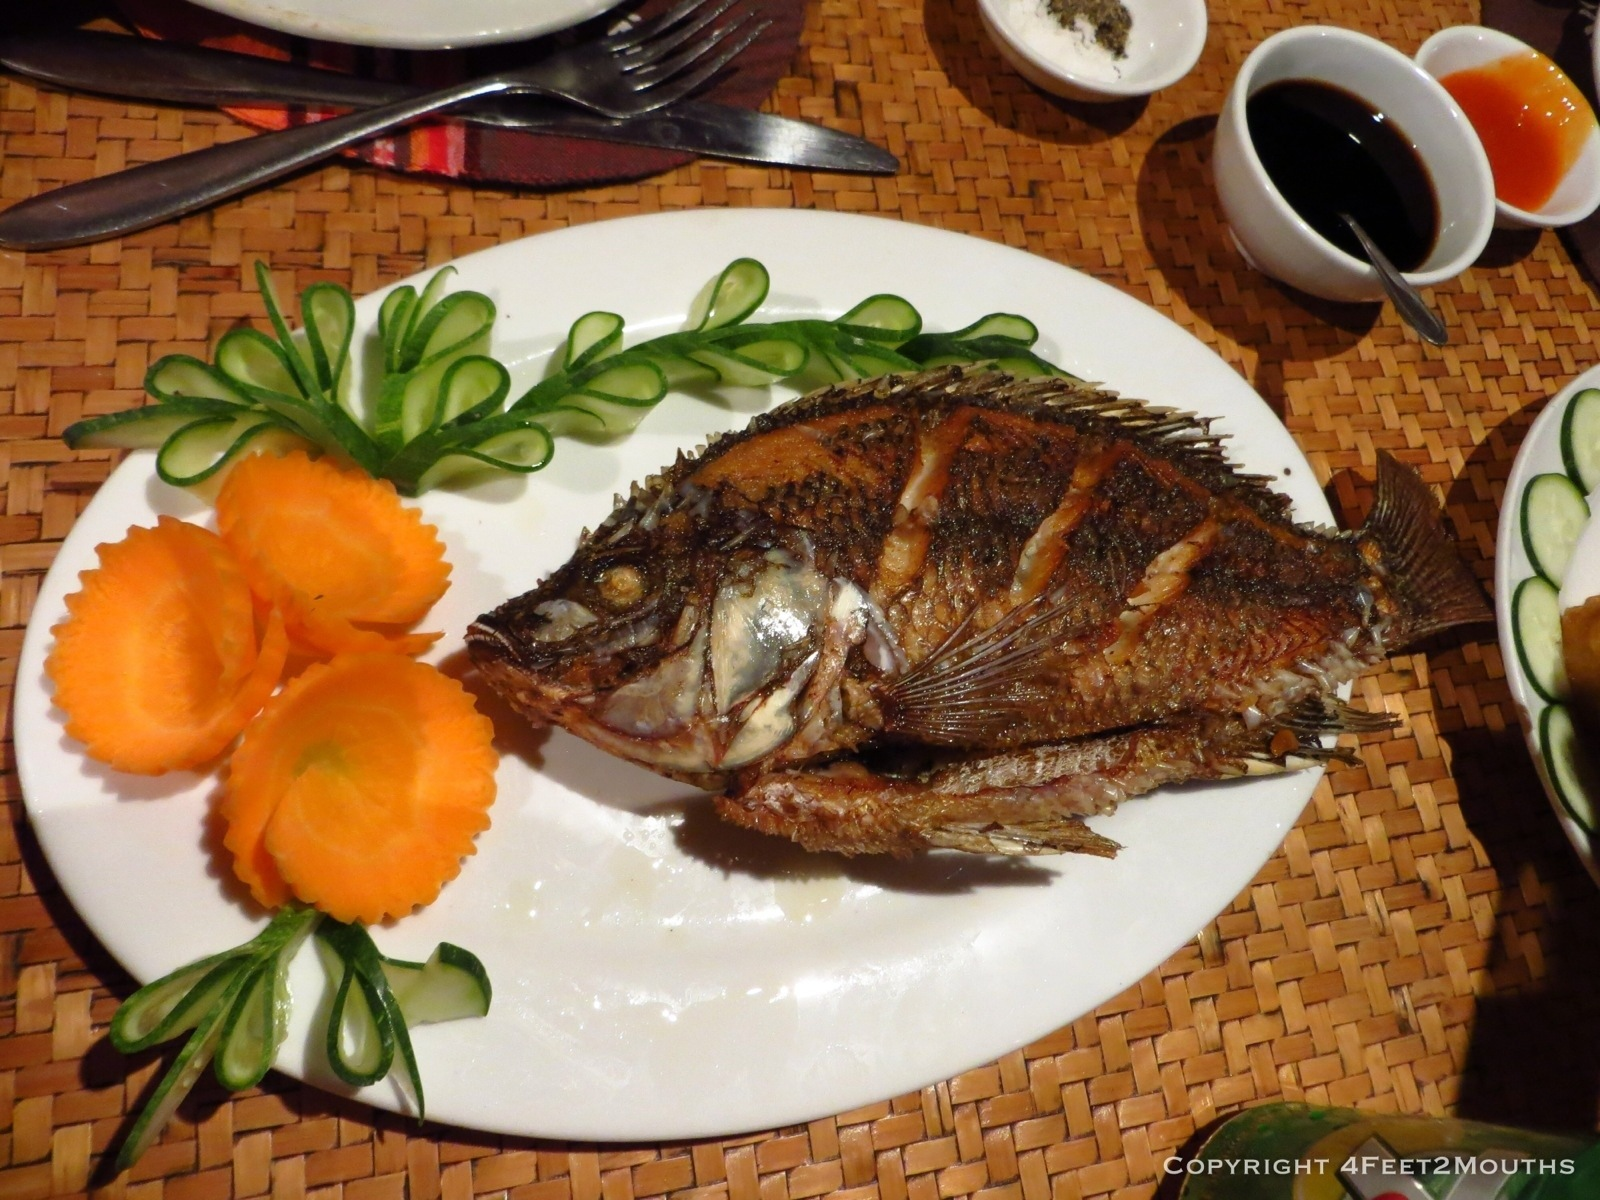 Vietnam 4 feet 2 mouths for Fried fish dinner